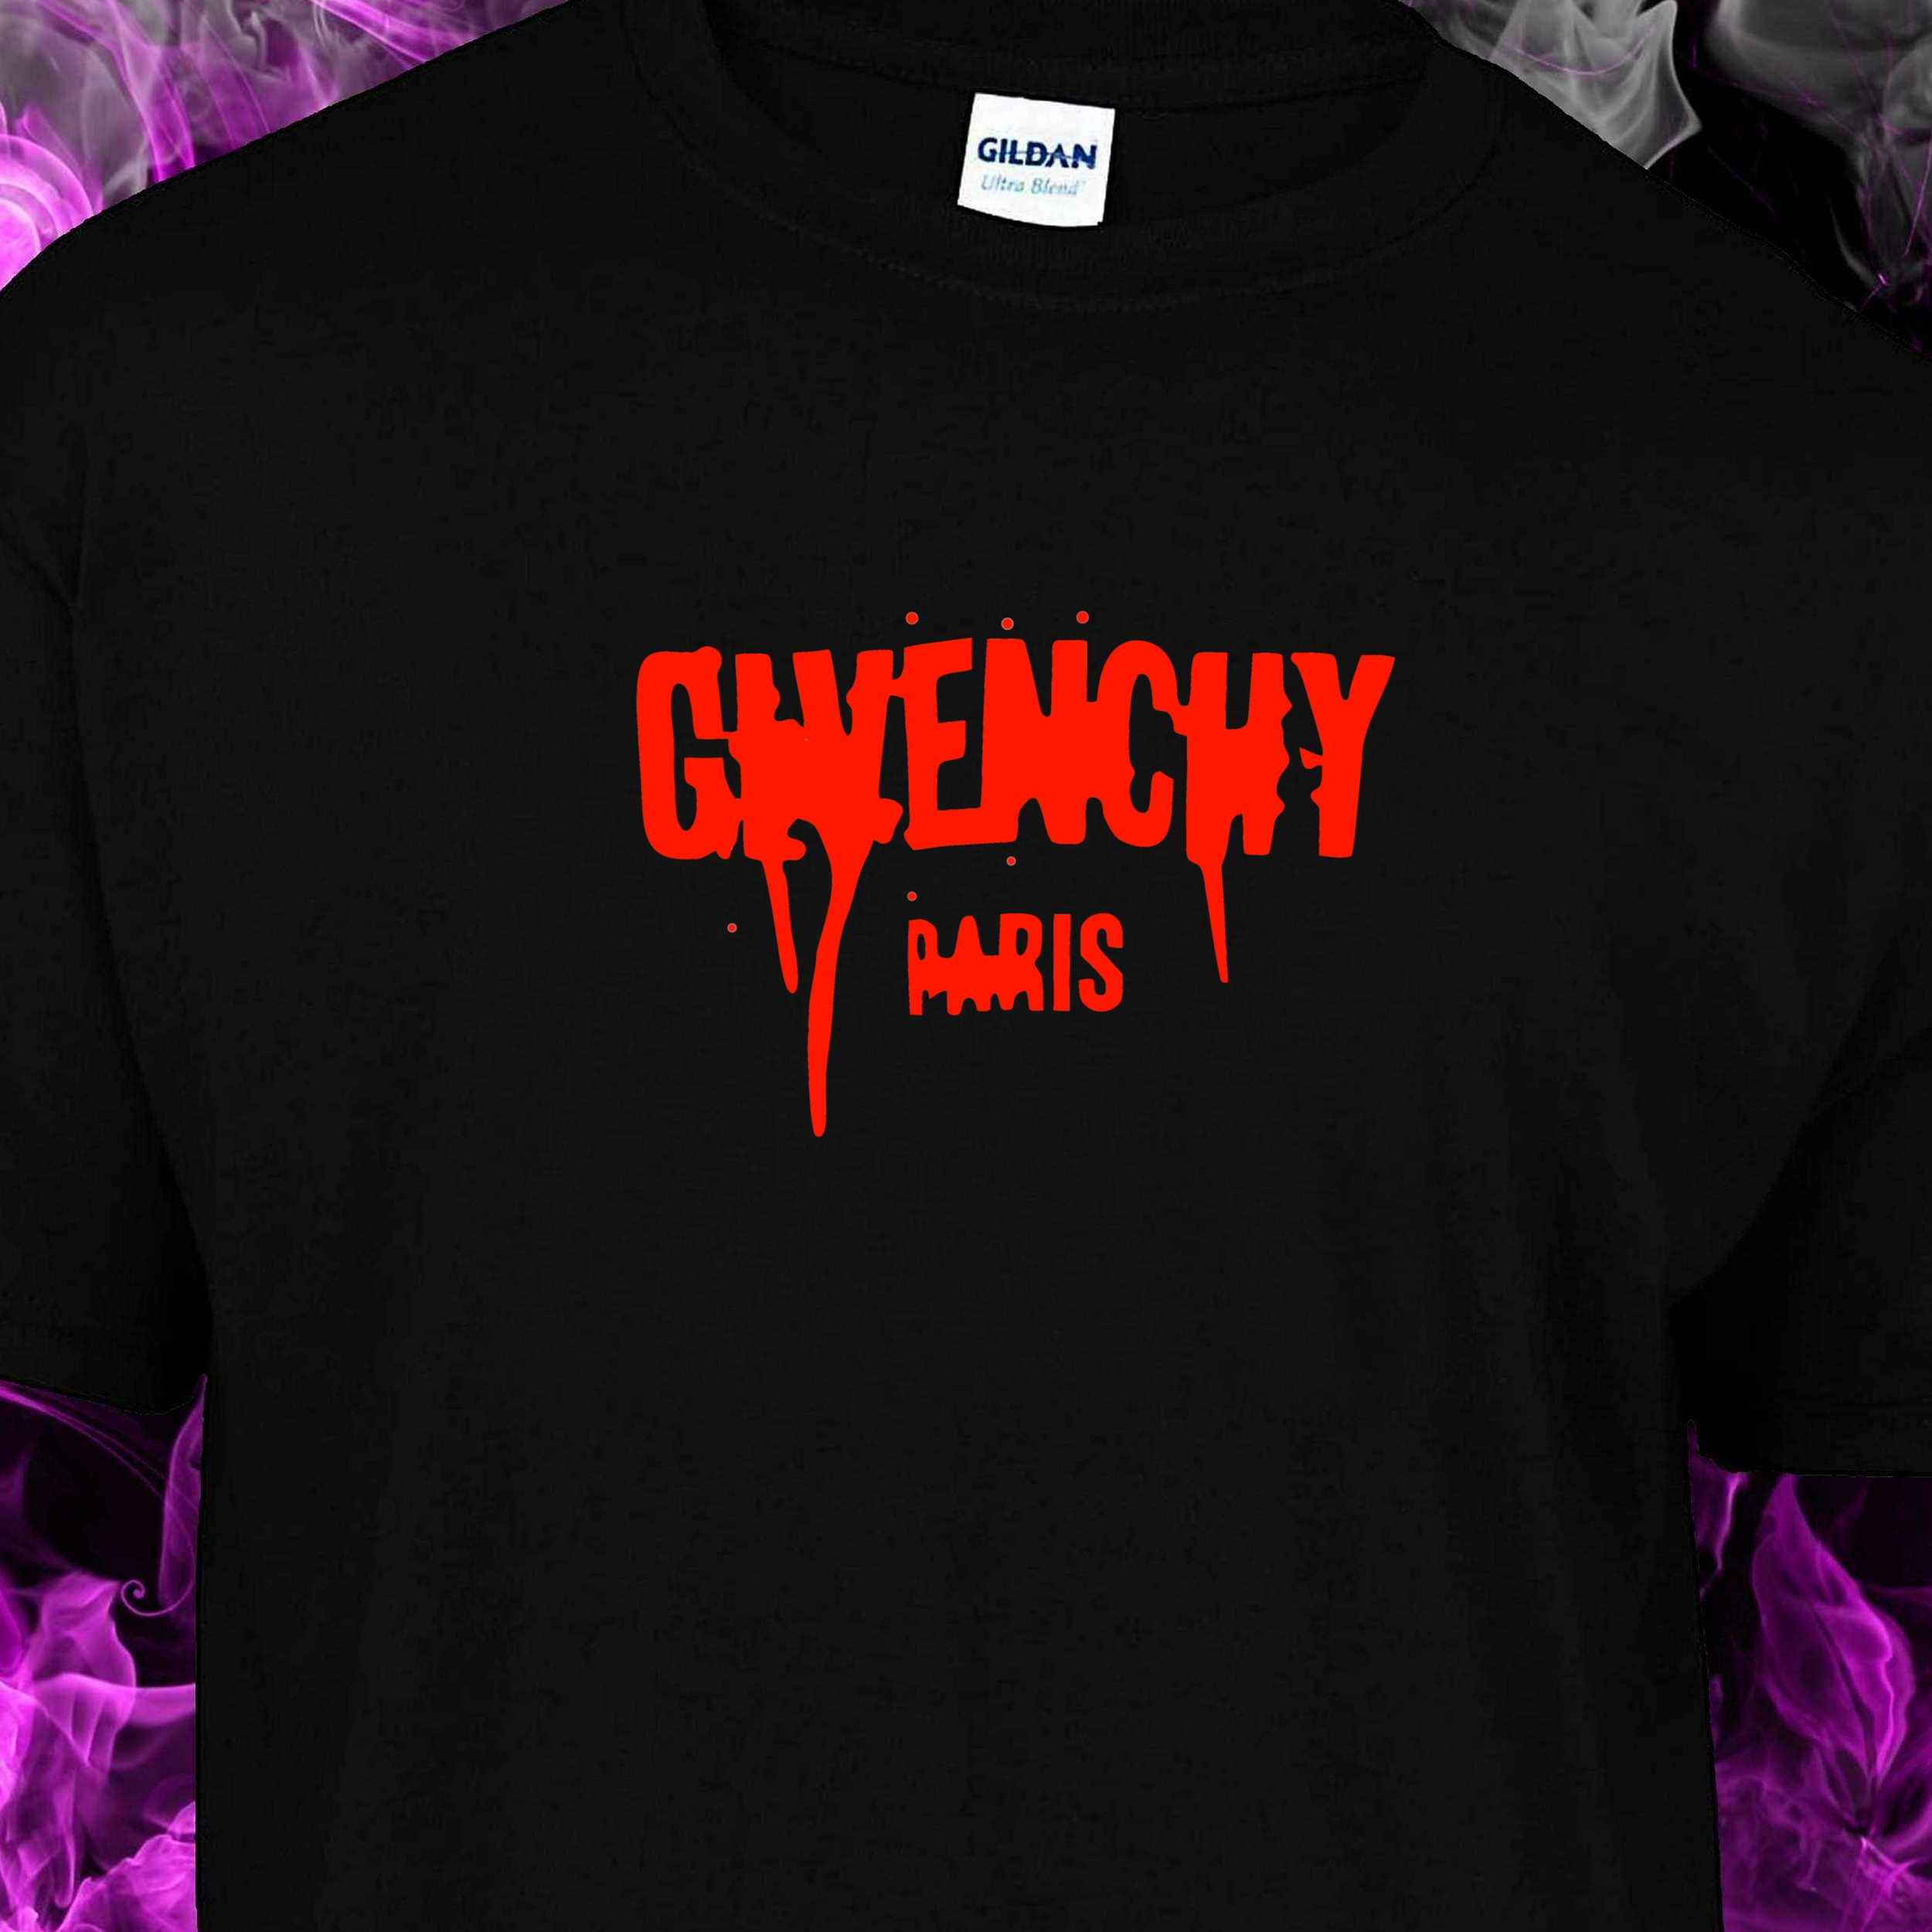 c1f936207a GIVEN(CHY) PARIS (DRIPPING BLOOD) – BLACK TSHIRT – RED LOGO – T ...